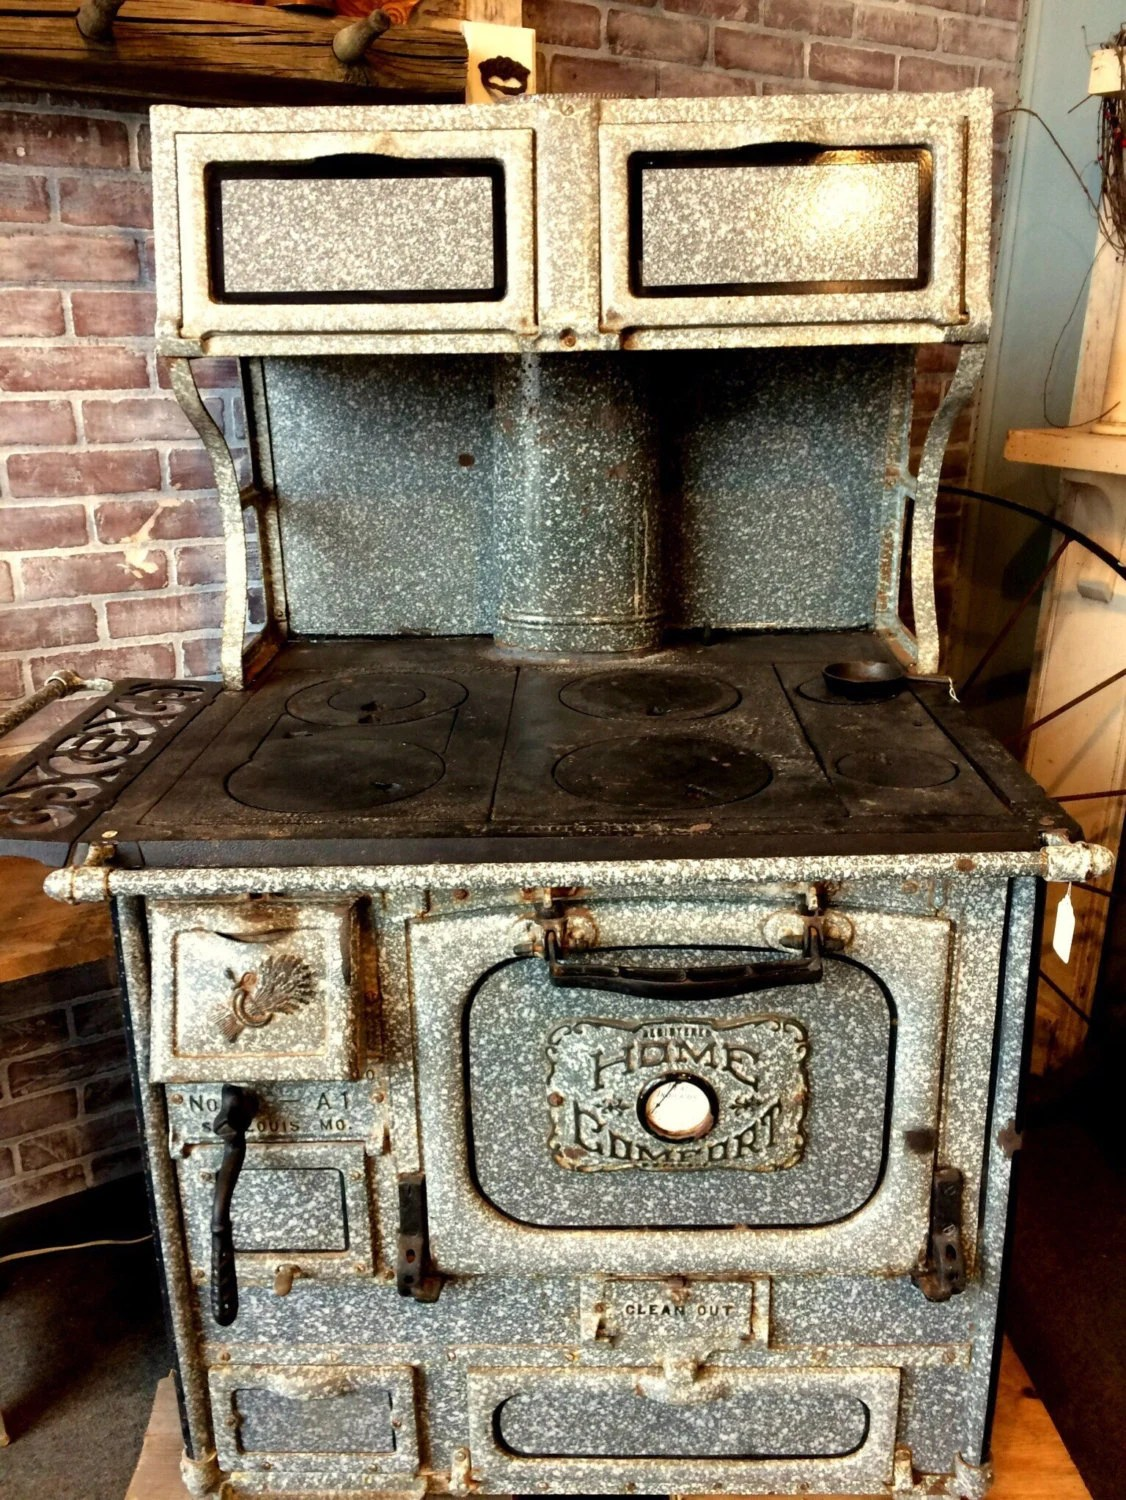 SALE Antique Wood Stove Granite Cook Stove Home Comfort Etsy